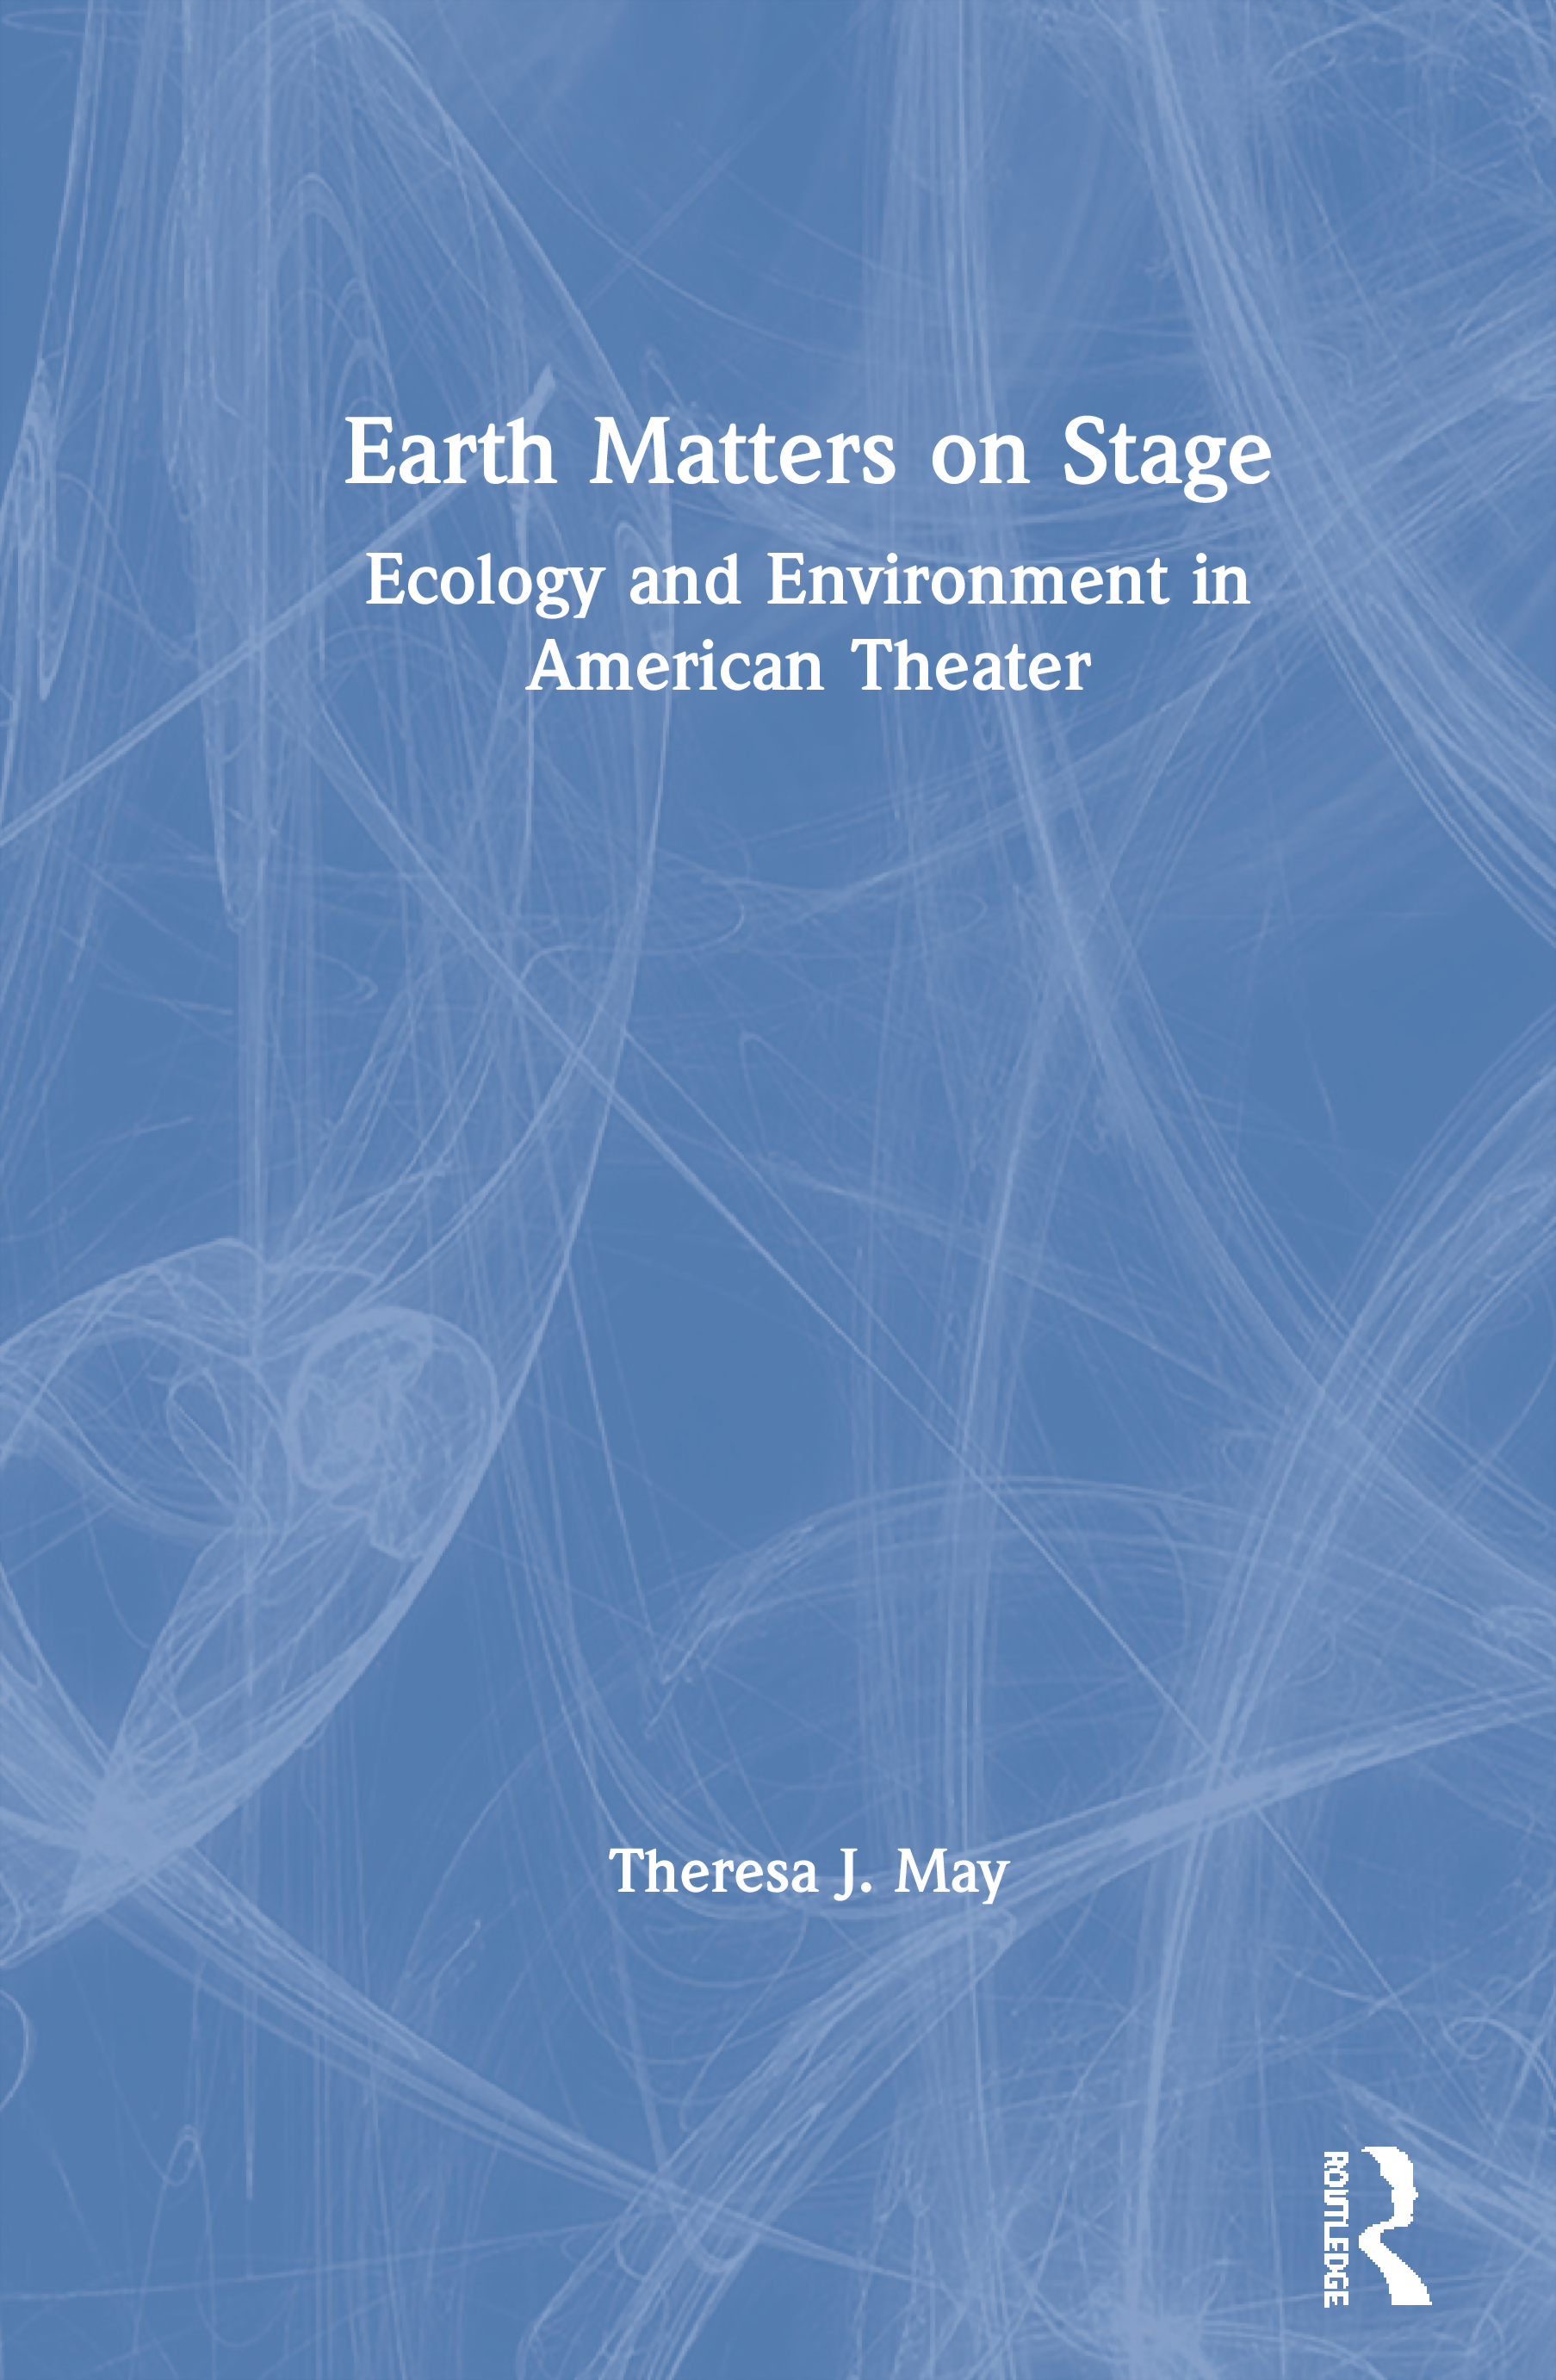 Earth Matters on Stage: Ecology and Environment in American Theater book cover